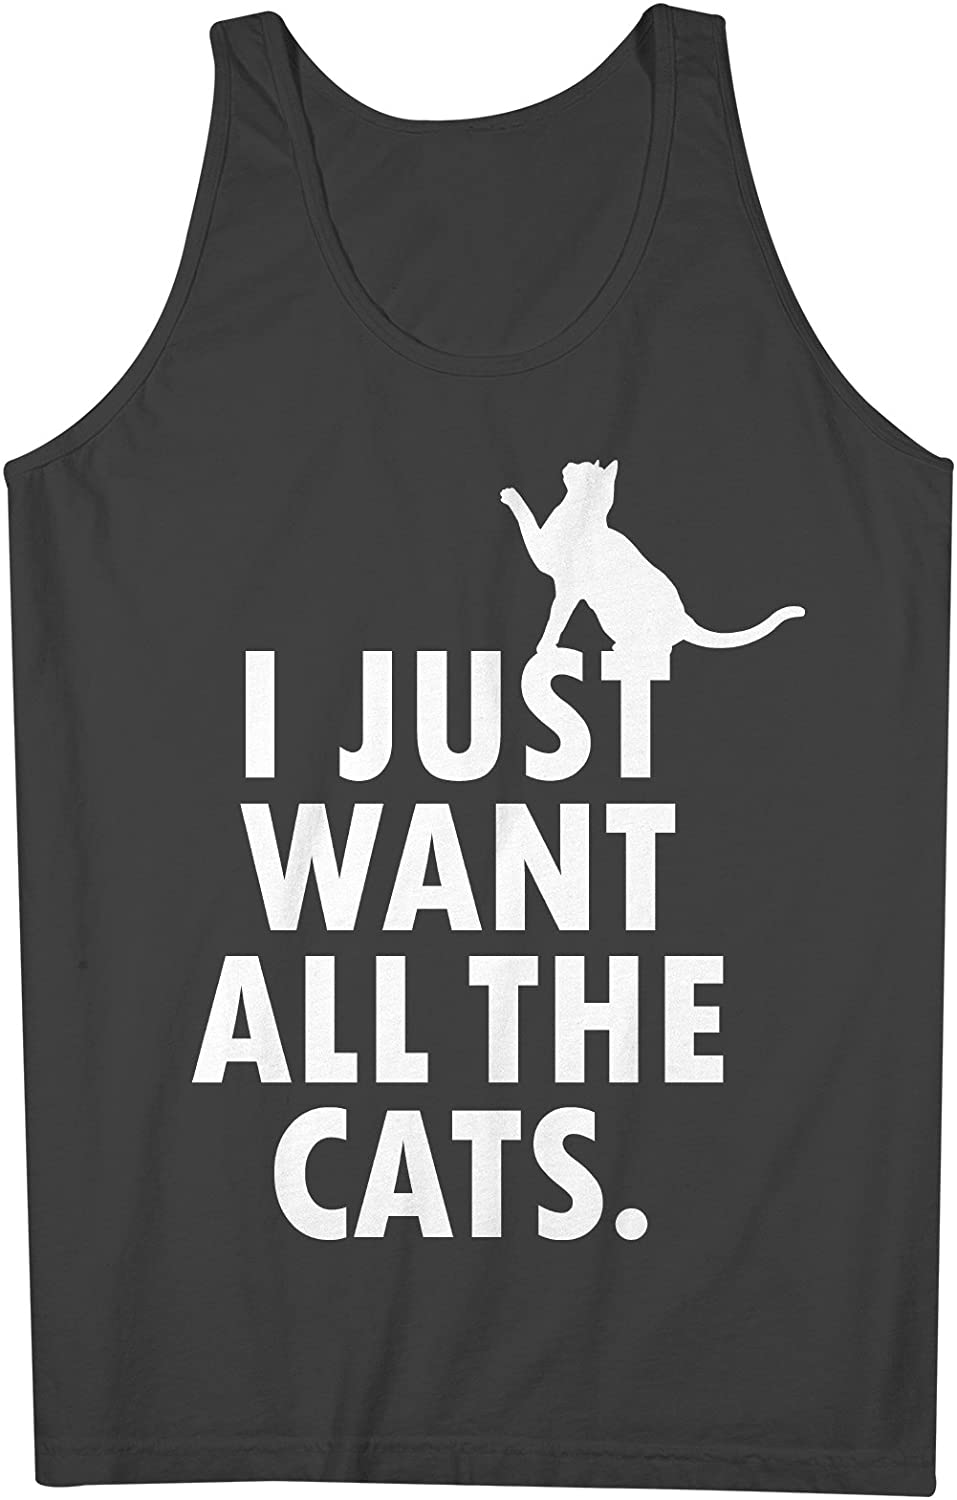 I Just Want All The Cats 男性用 Tank Top Sleeveless Shirt